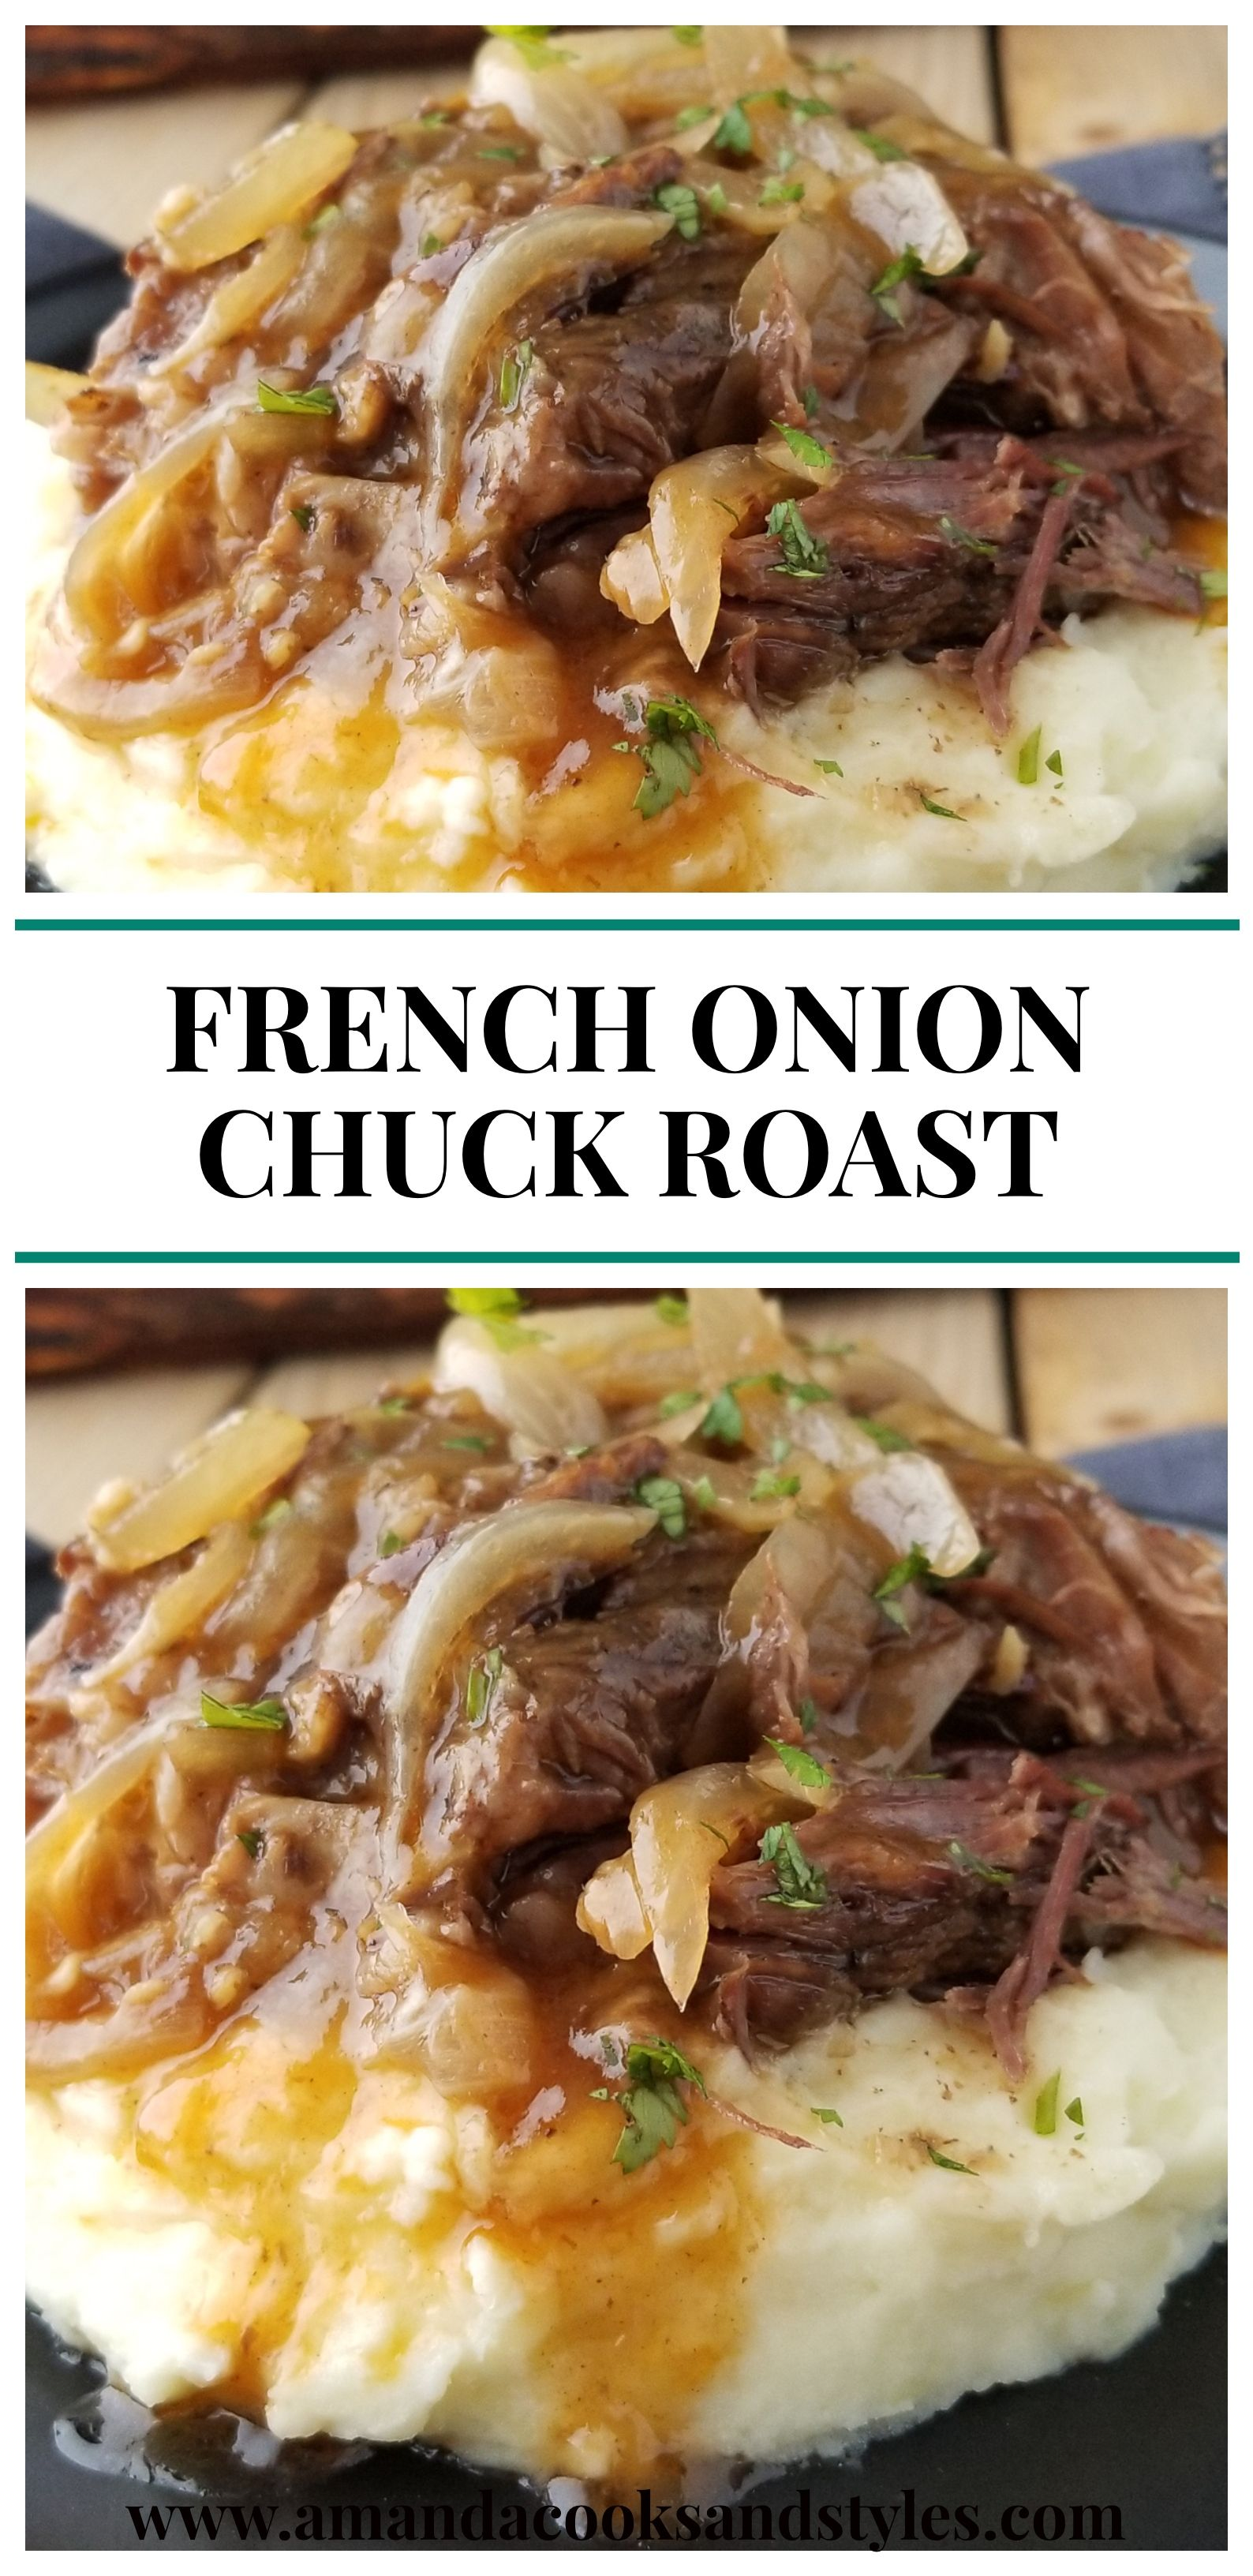 FRENCH ONION CHUCK ROAST